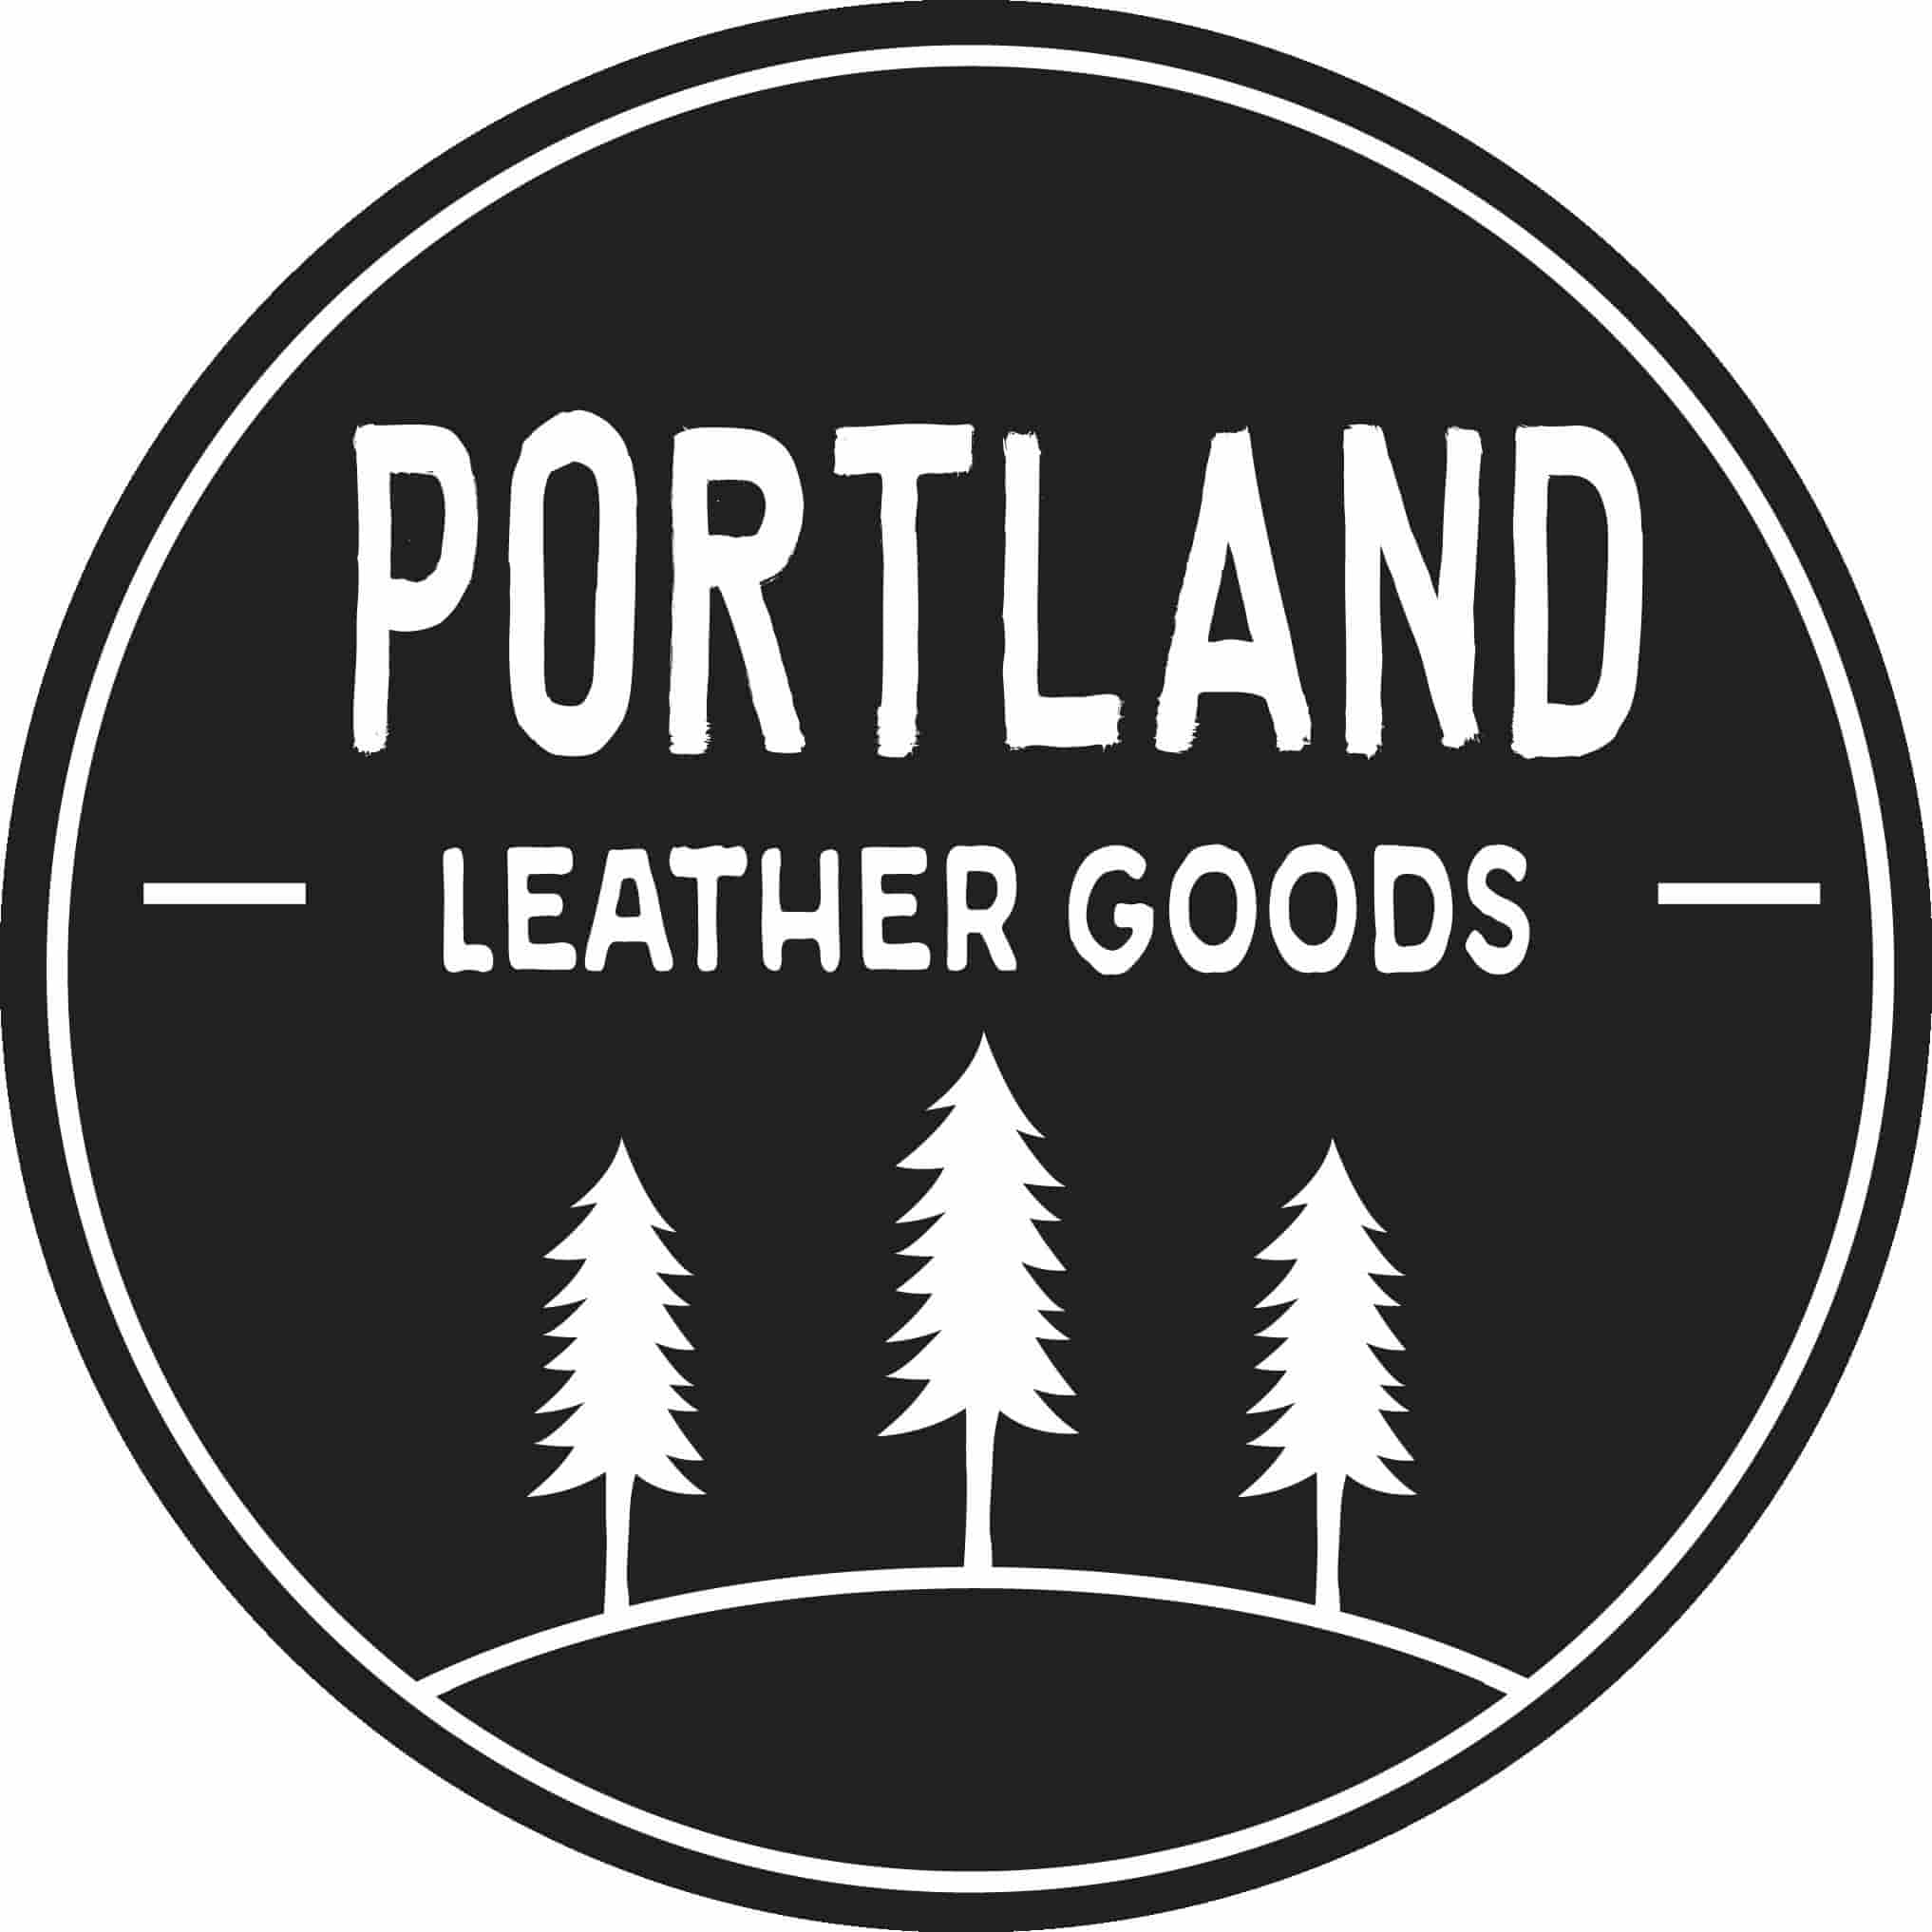 PortlandLeather.jpg